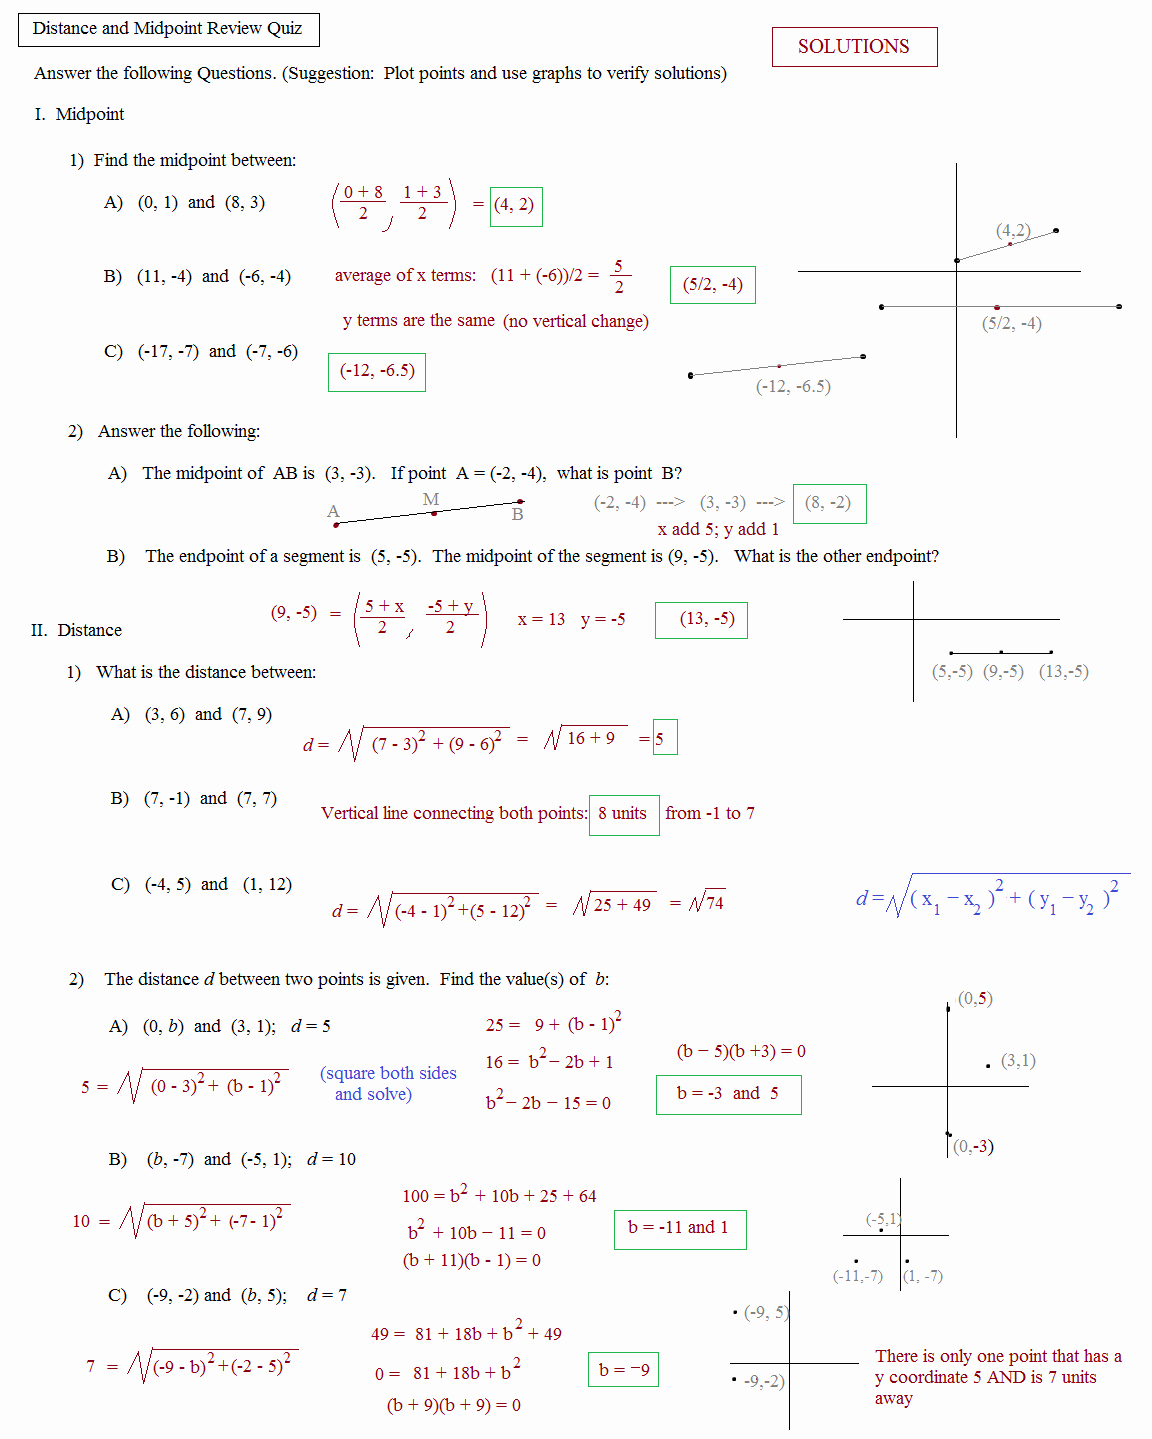 Distance and Midpoint formula Worksheet Inspirational Math Plane Midpoint and Distance